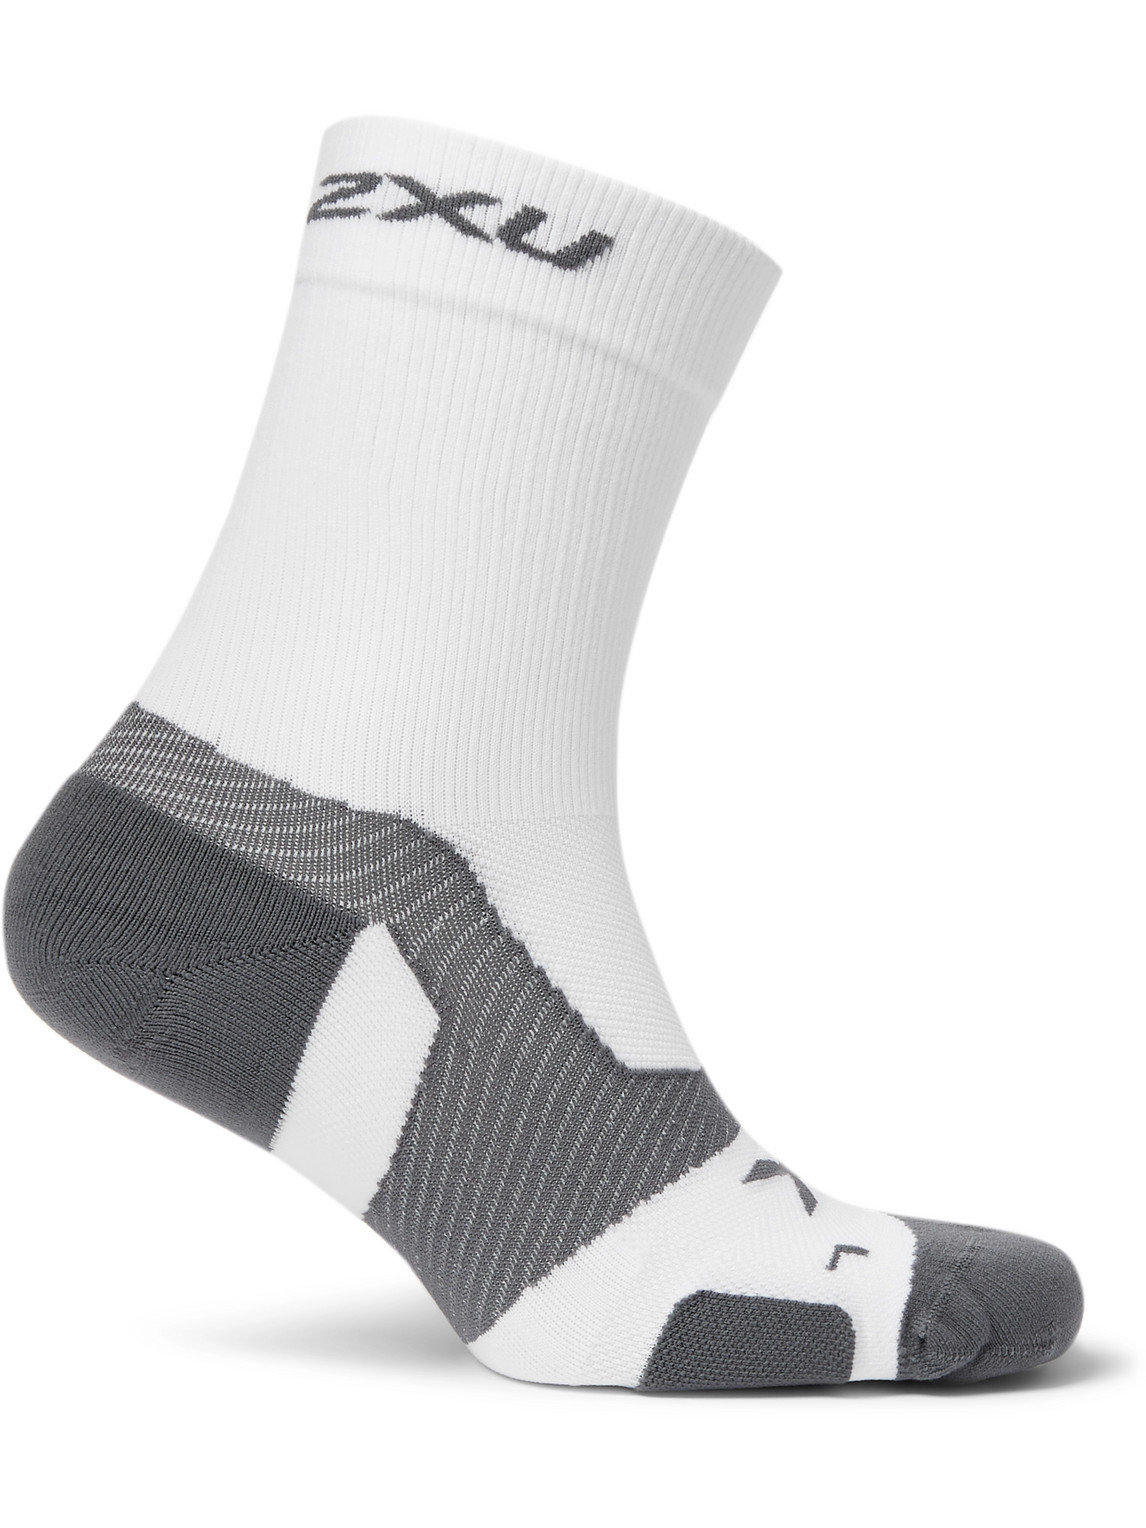 2xu Vectr Cushioned Stretch-knit Crew Socks In White